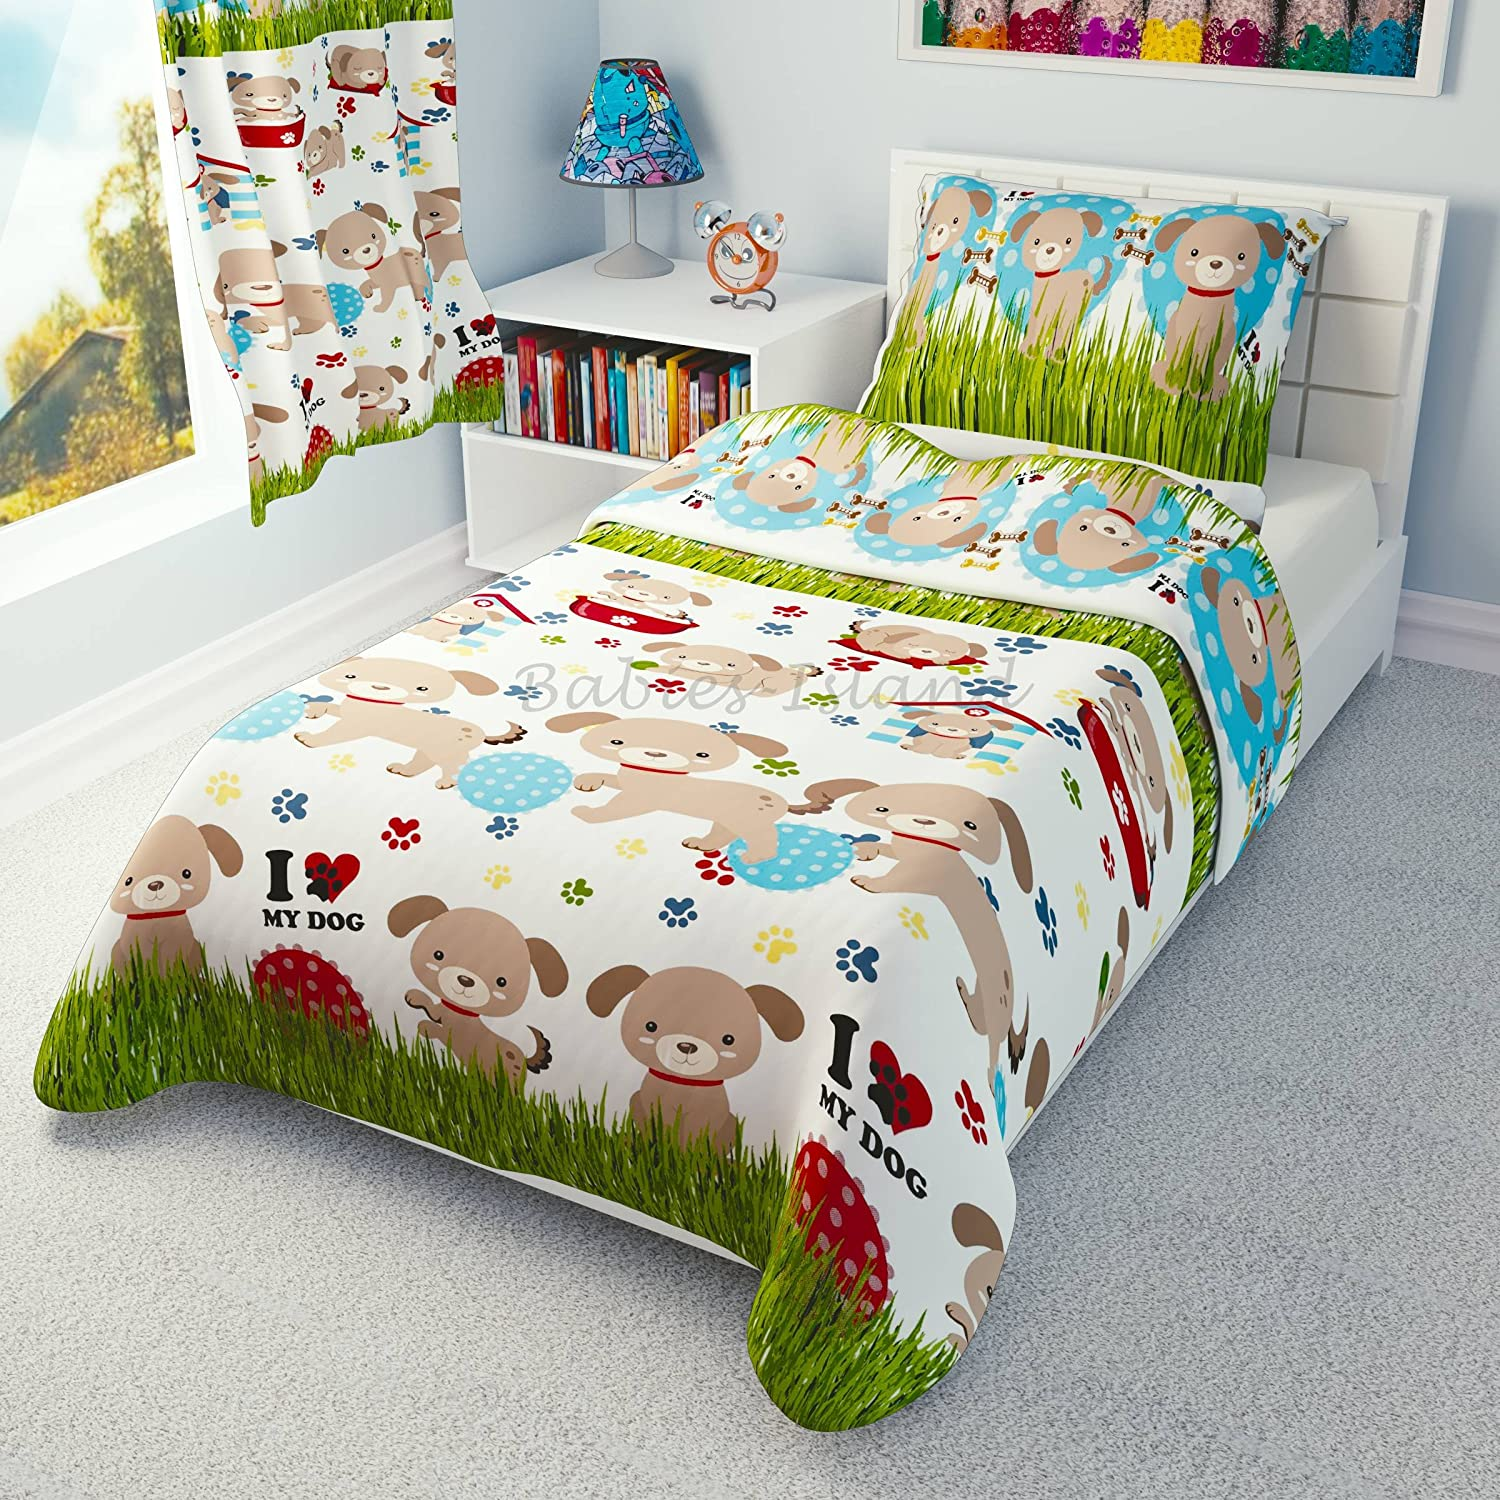 babies-island Children's Bedding set- Girls and Boys Duvet Cover and Pillowcase Cot/Cot bed/Toddler - Dogs, Puppies (90x120 cm)